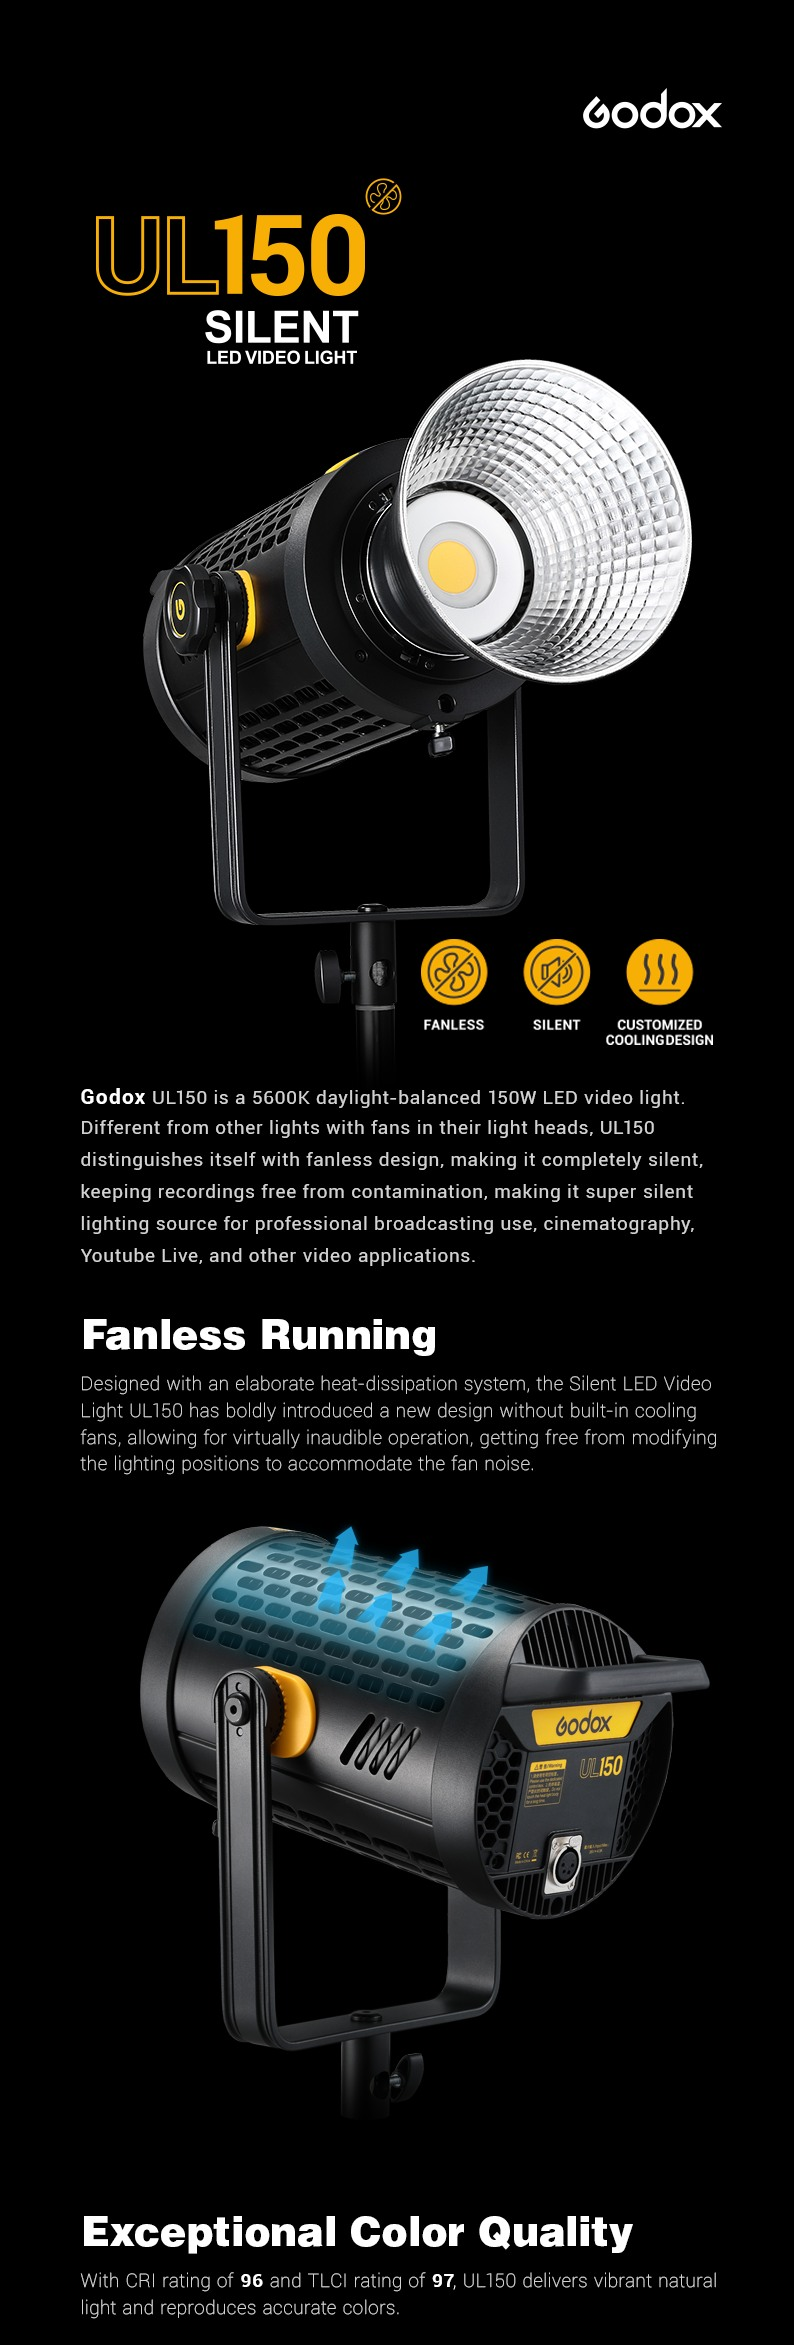 Godox UL150 silient light. Fanless Running. Exeptional Color Quality.